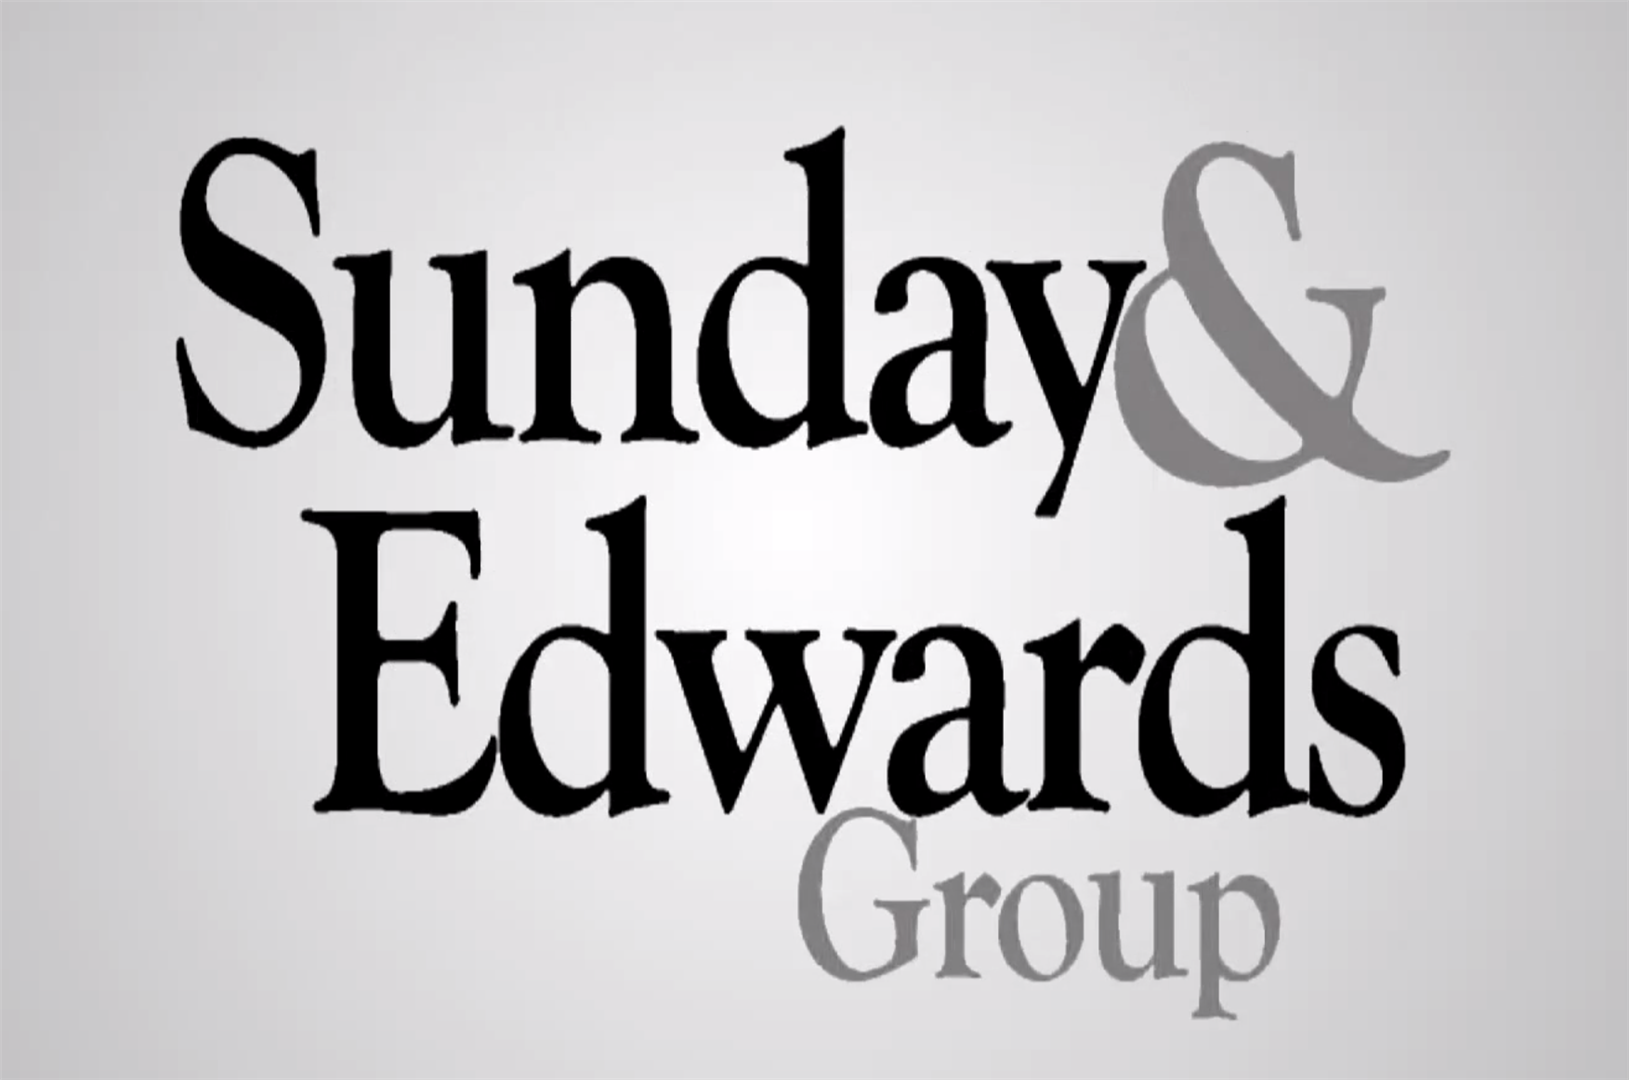 Sunday & Edwards Group